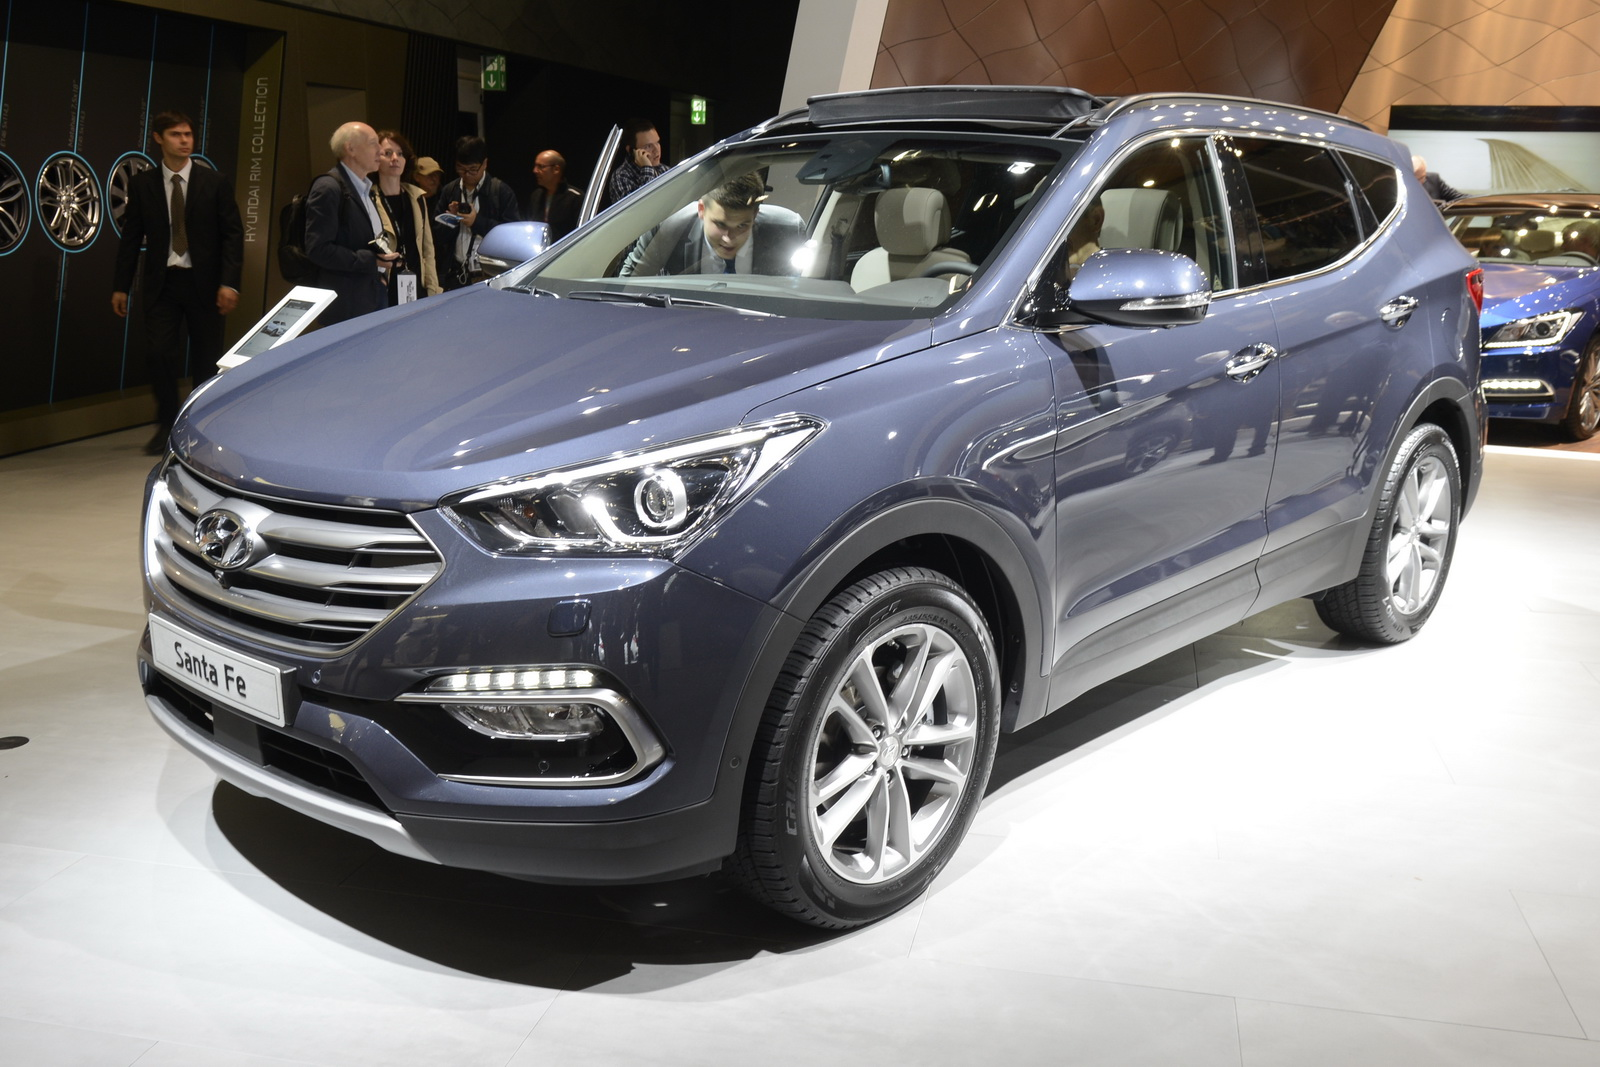 2016 hyundai santa fe shows its new face in frankfurt. Black Bedroom Furniture Sets. Home Design Ideas